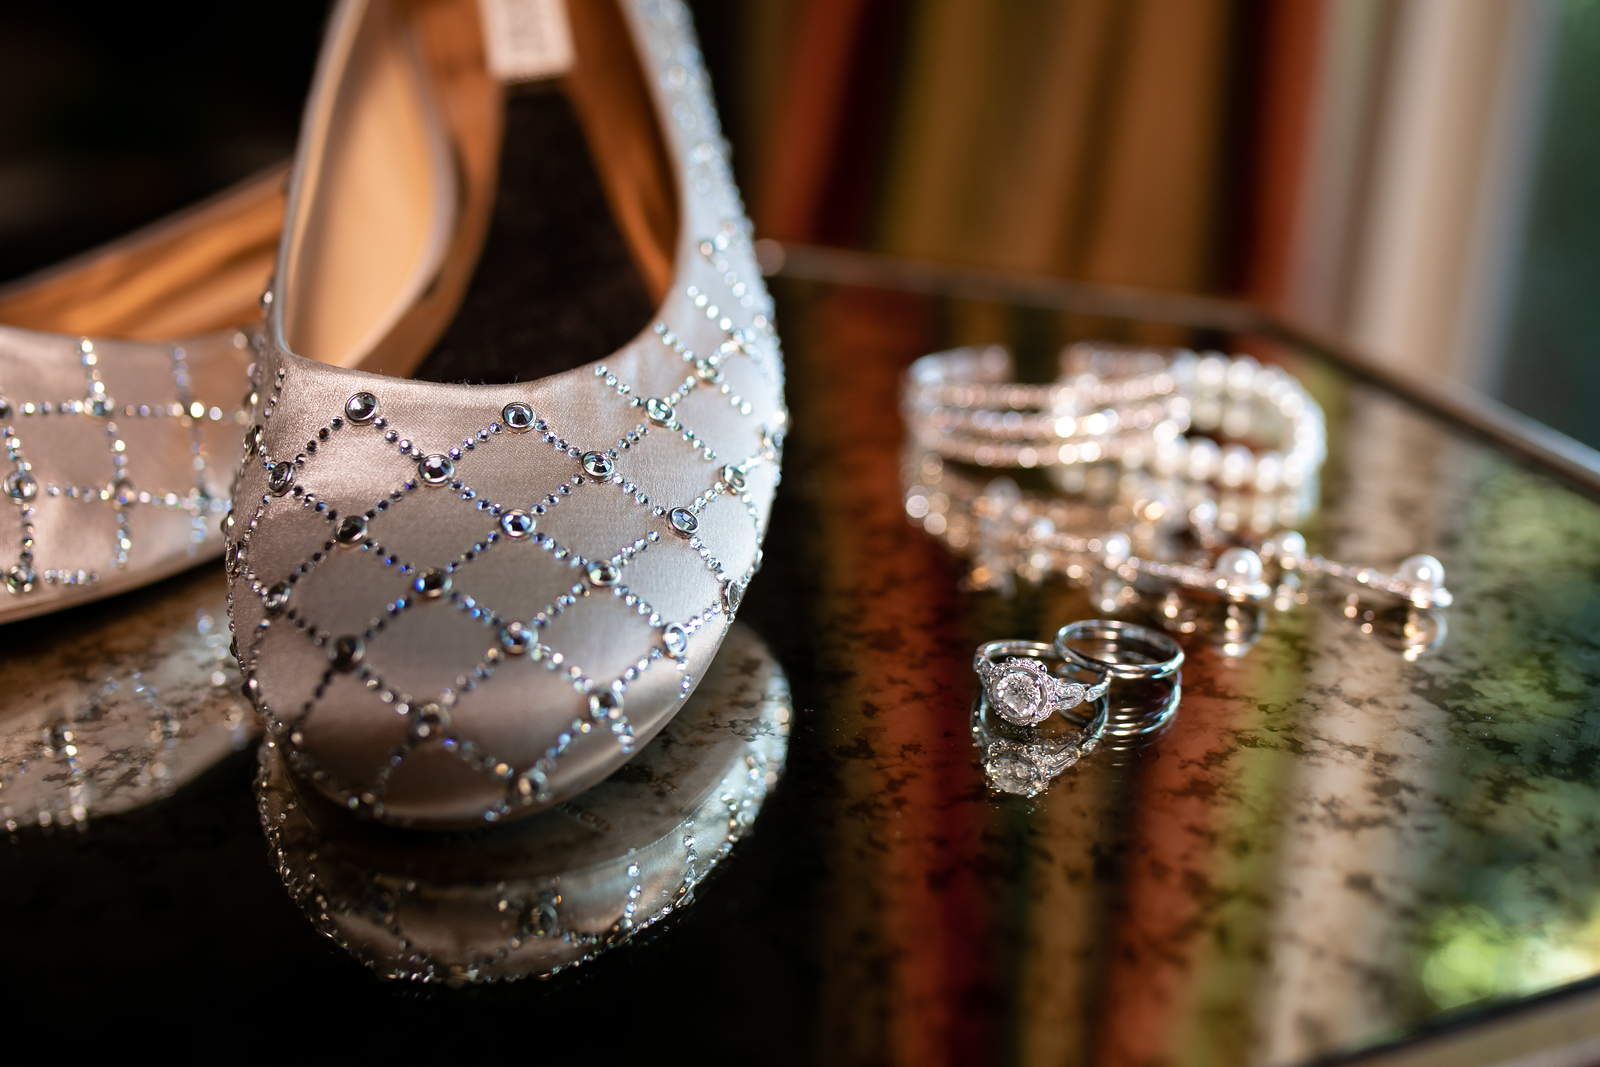 silver wedding shoes with pearl accents and bracelets sitting on a mirrored table